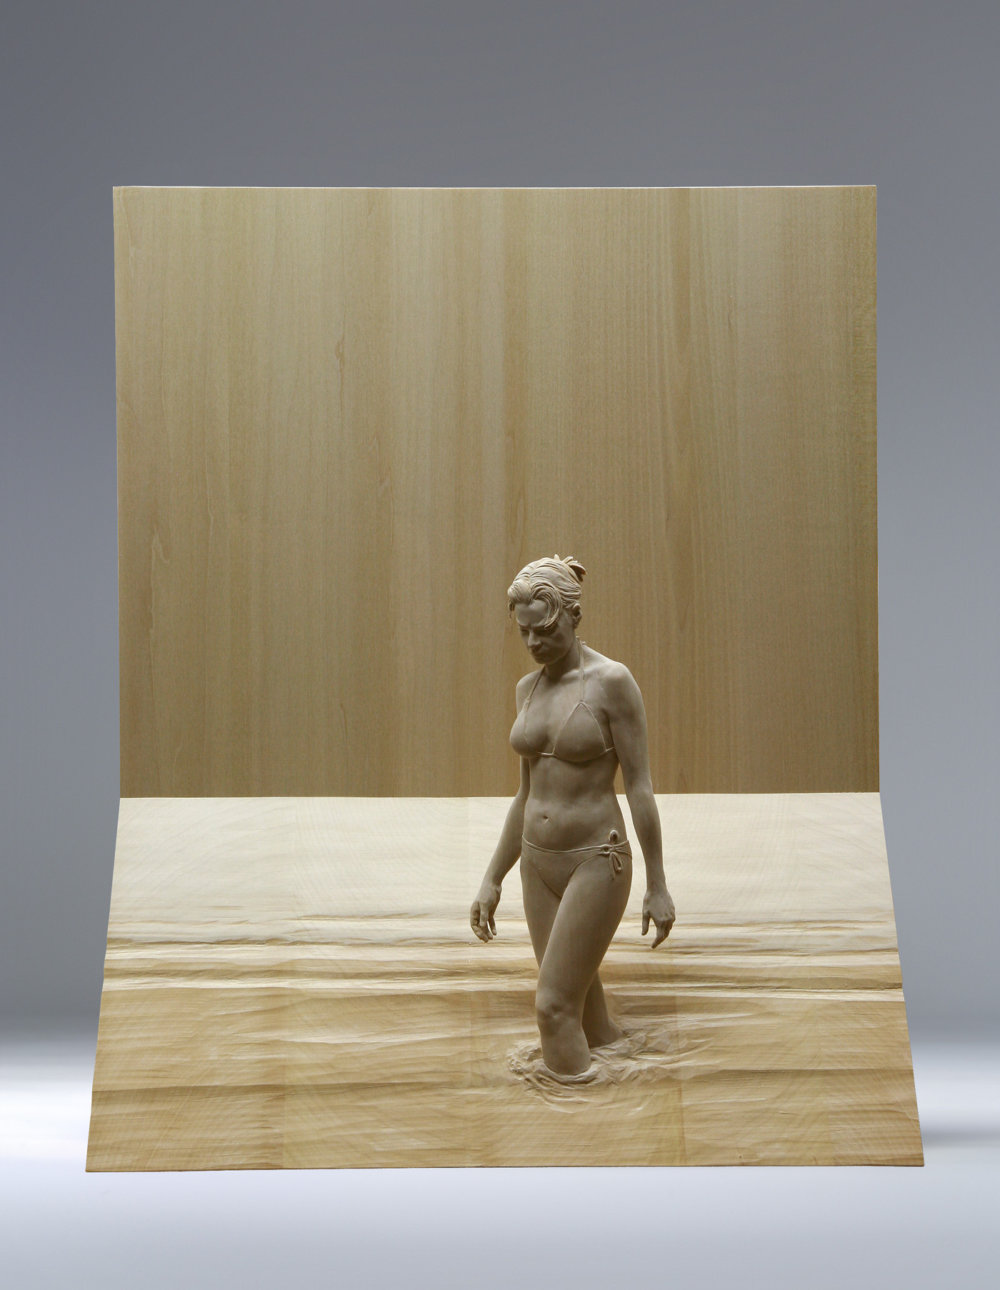 Magnificent Life Like Wooden Sculptures Hand Carved By Peter Demetz 4